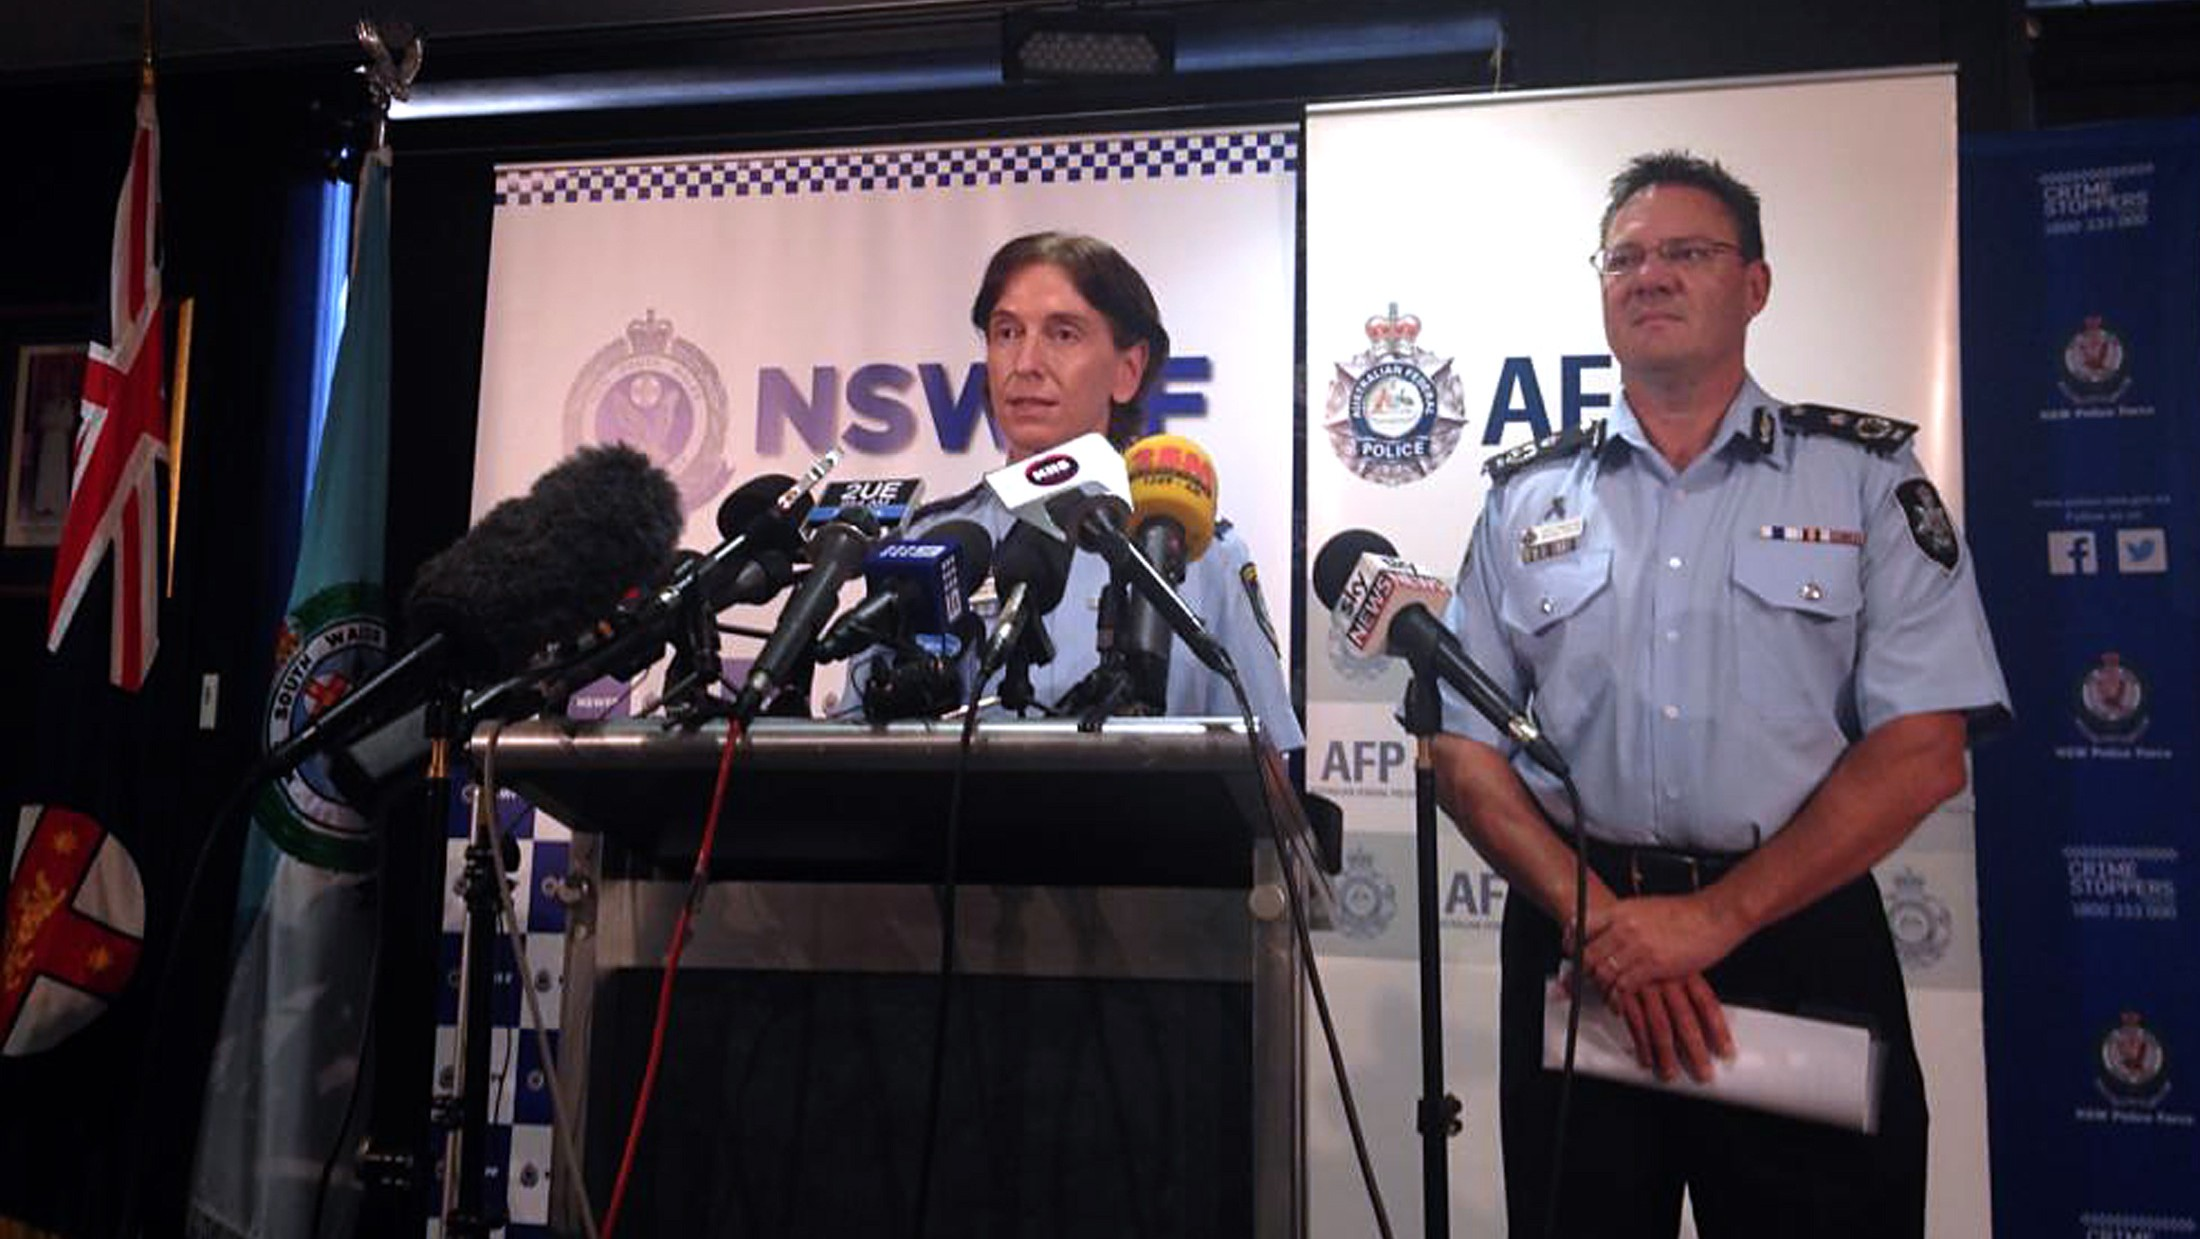 Australian Police Arrest Two Men Before Alleged 'Imminent' Islamic State Terror Attack